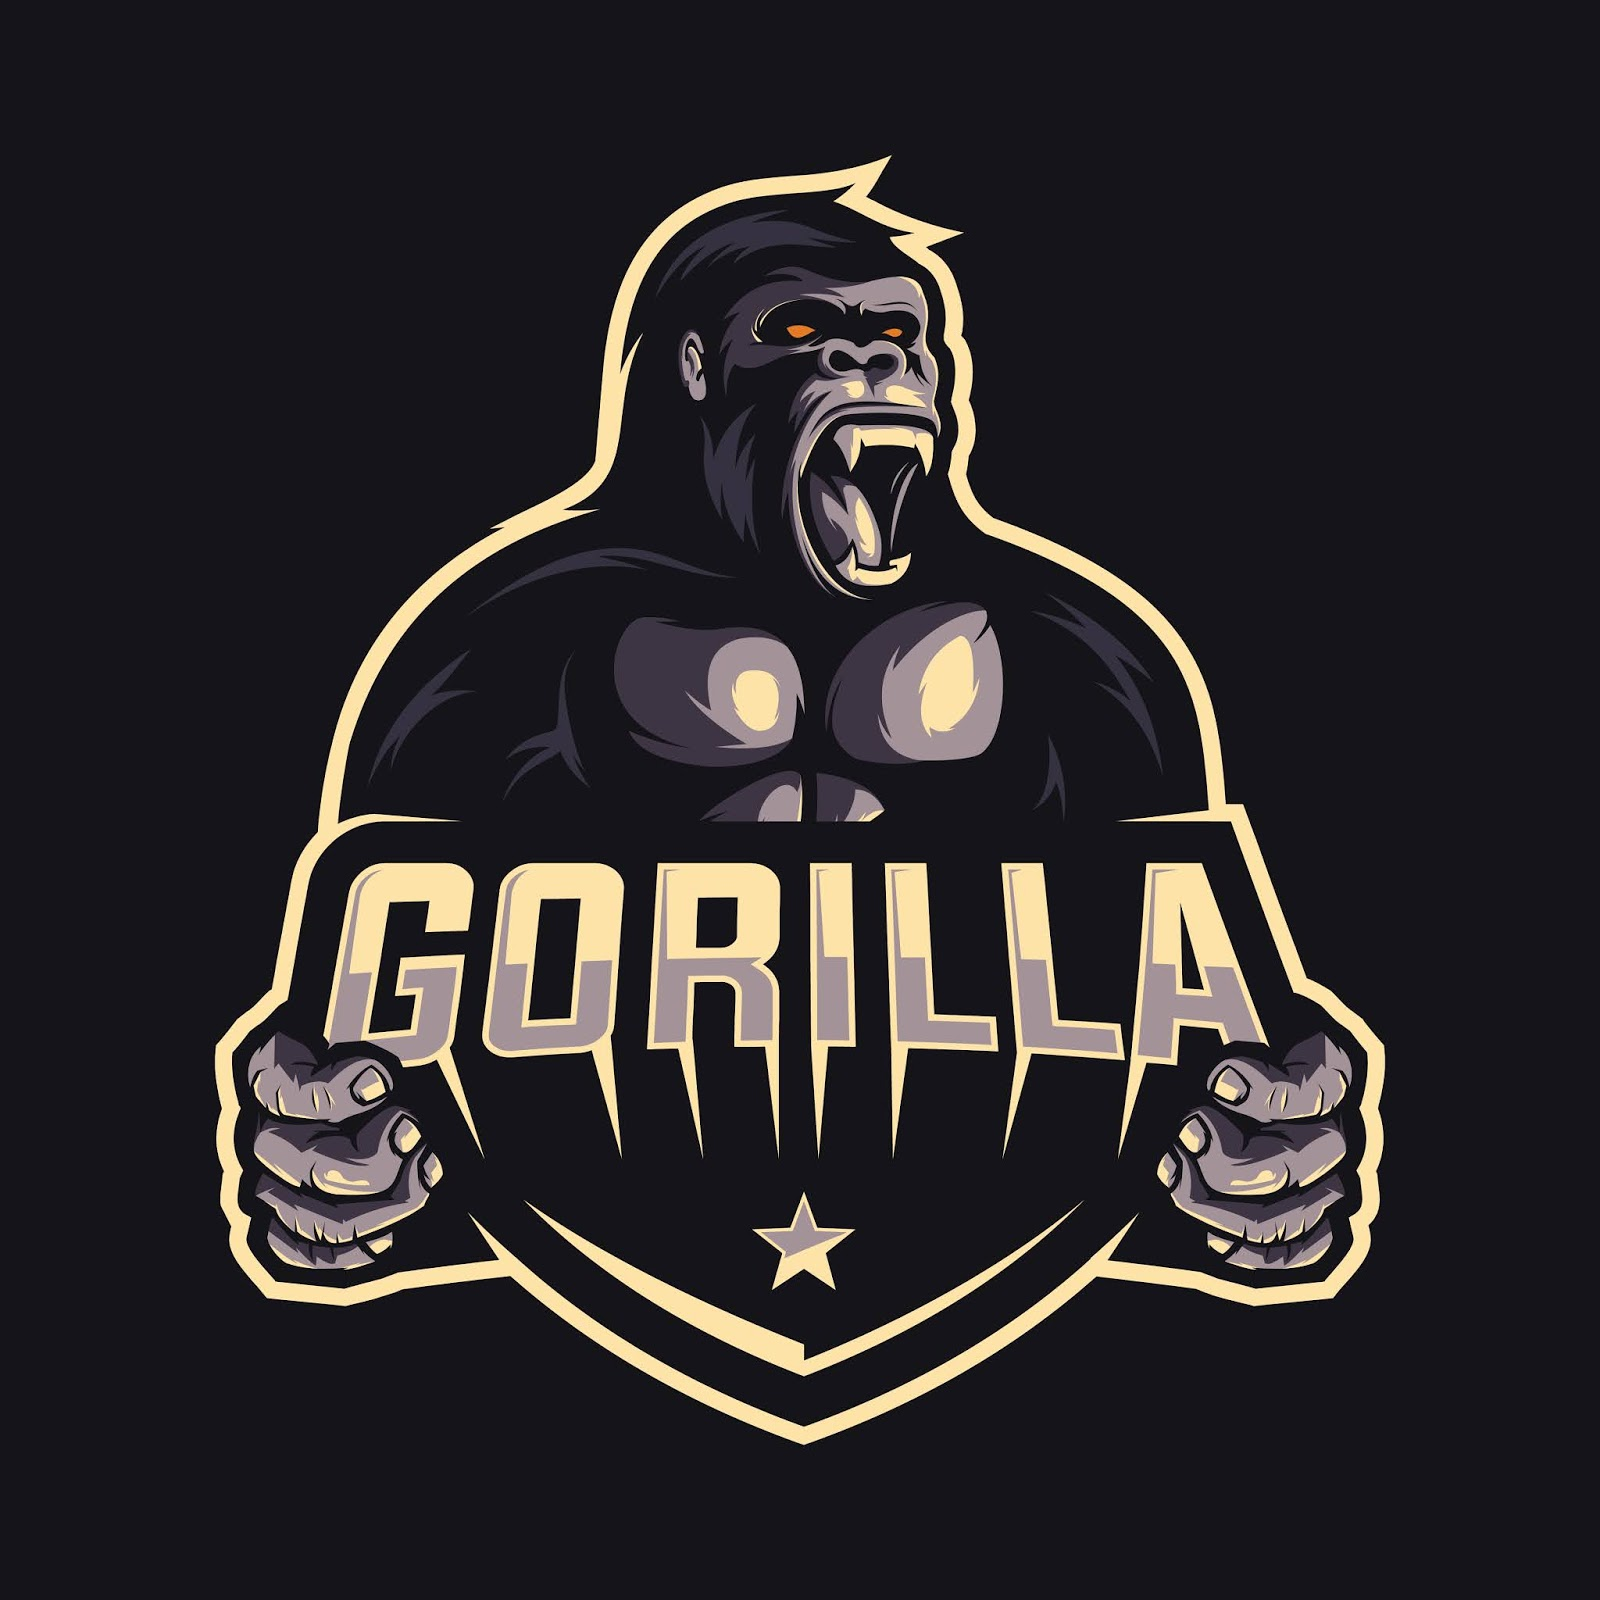 Gorilla Logo Design Free Download Vector CDR, AI, EPS and PNG Formats